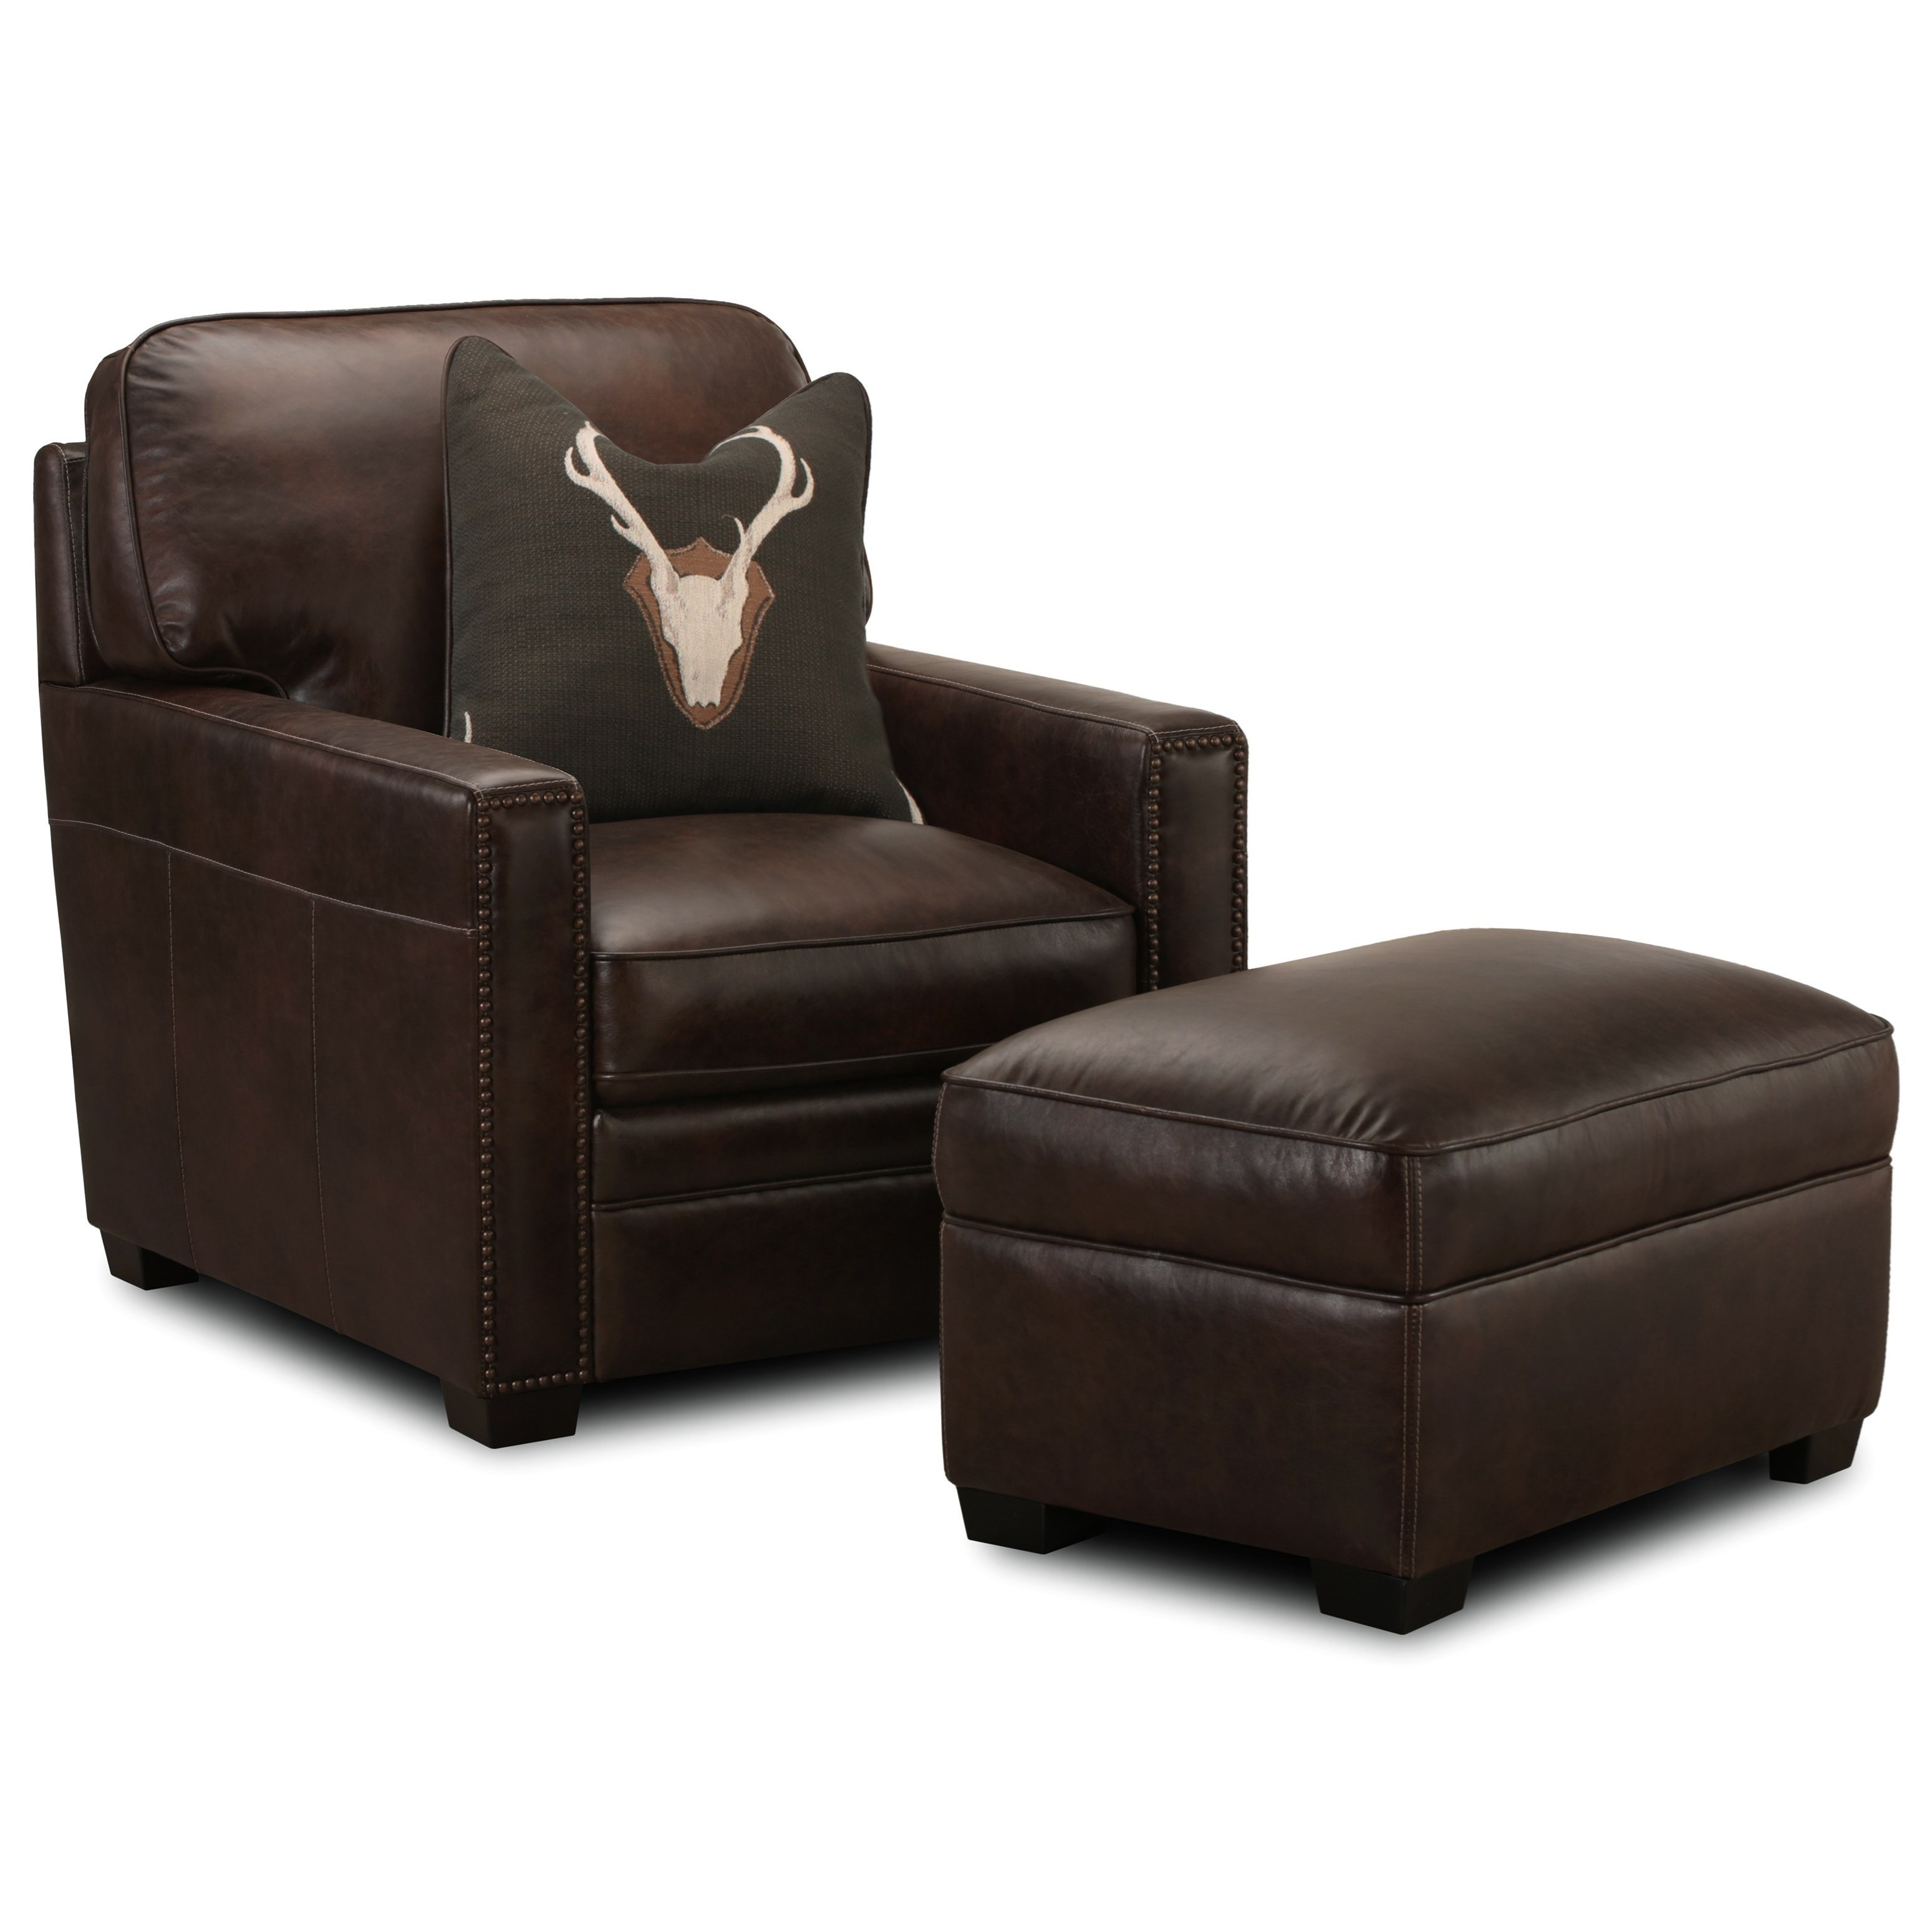 Chair And Ottoman Set J452 Leather Chair With Nailheads And Ottoman Set By Simon Li At Conlin S Furniture